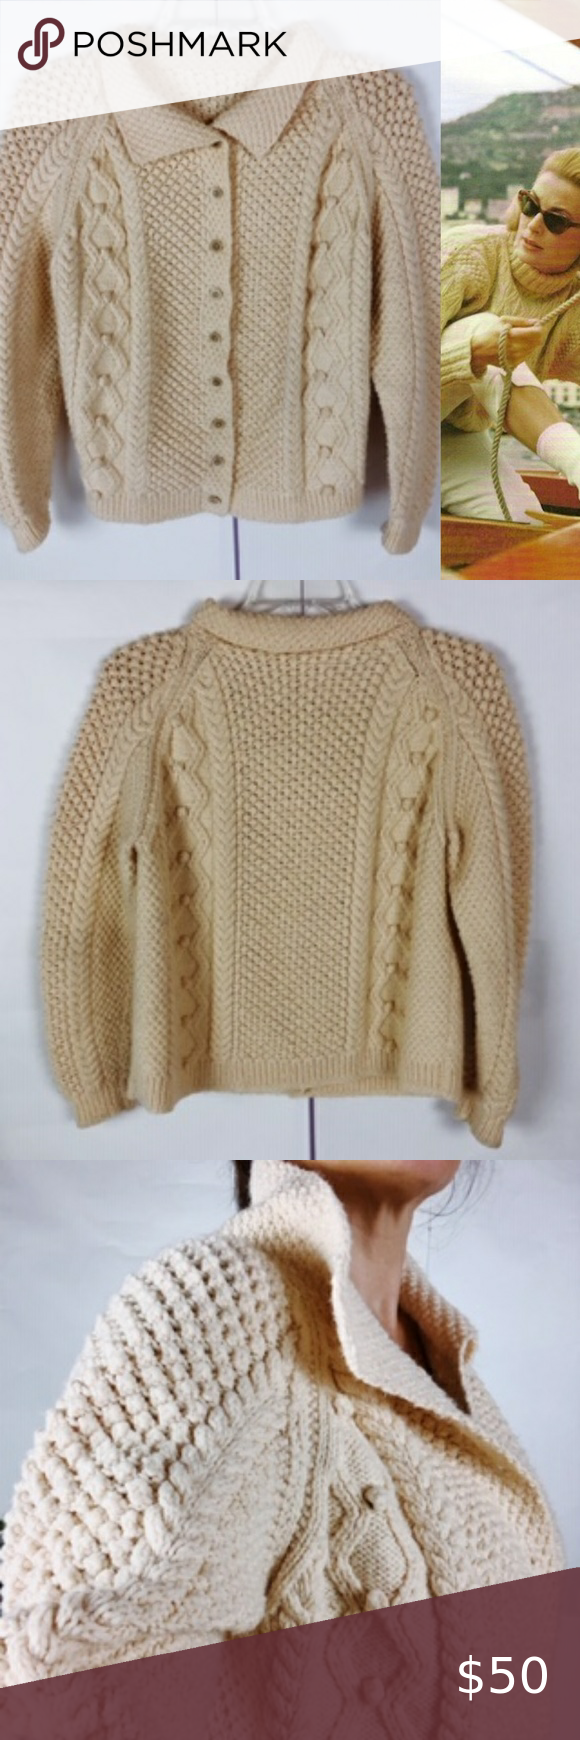 Vintage Hand-Knit Fisherman Cardigan Sweater Vinta